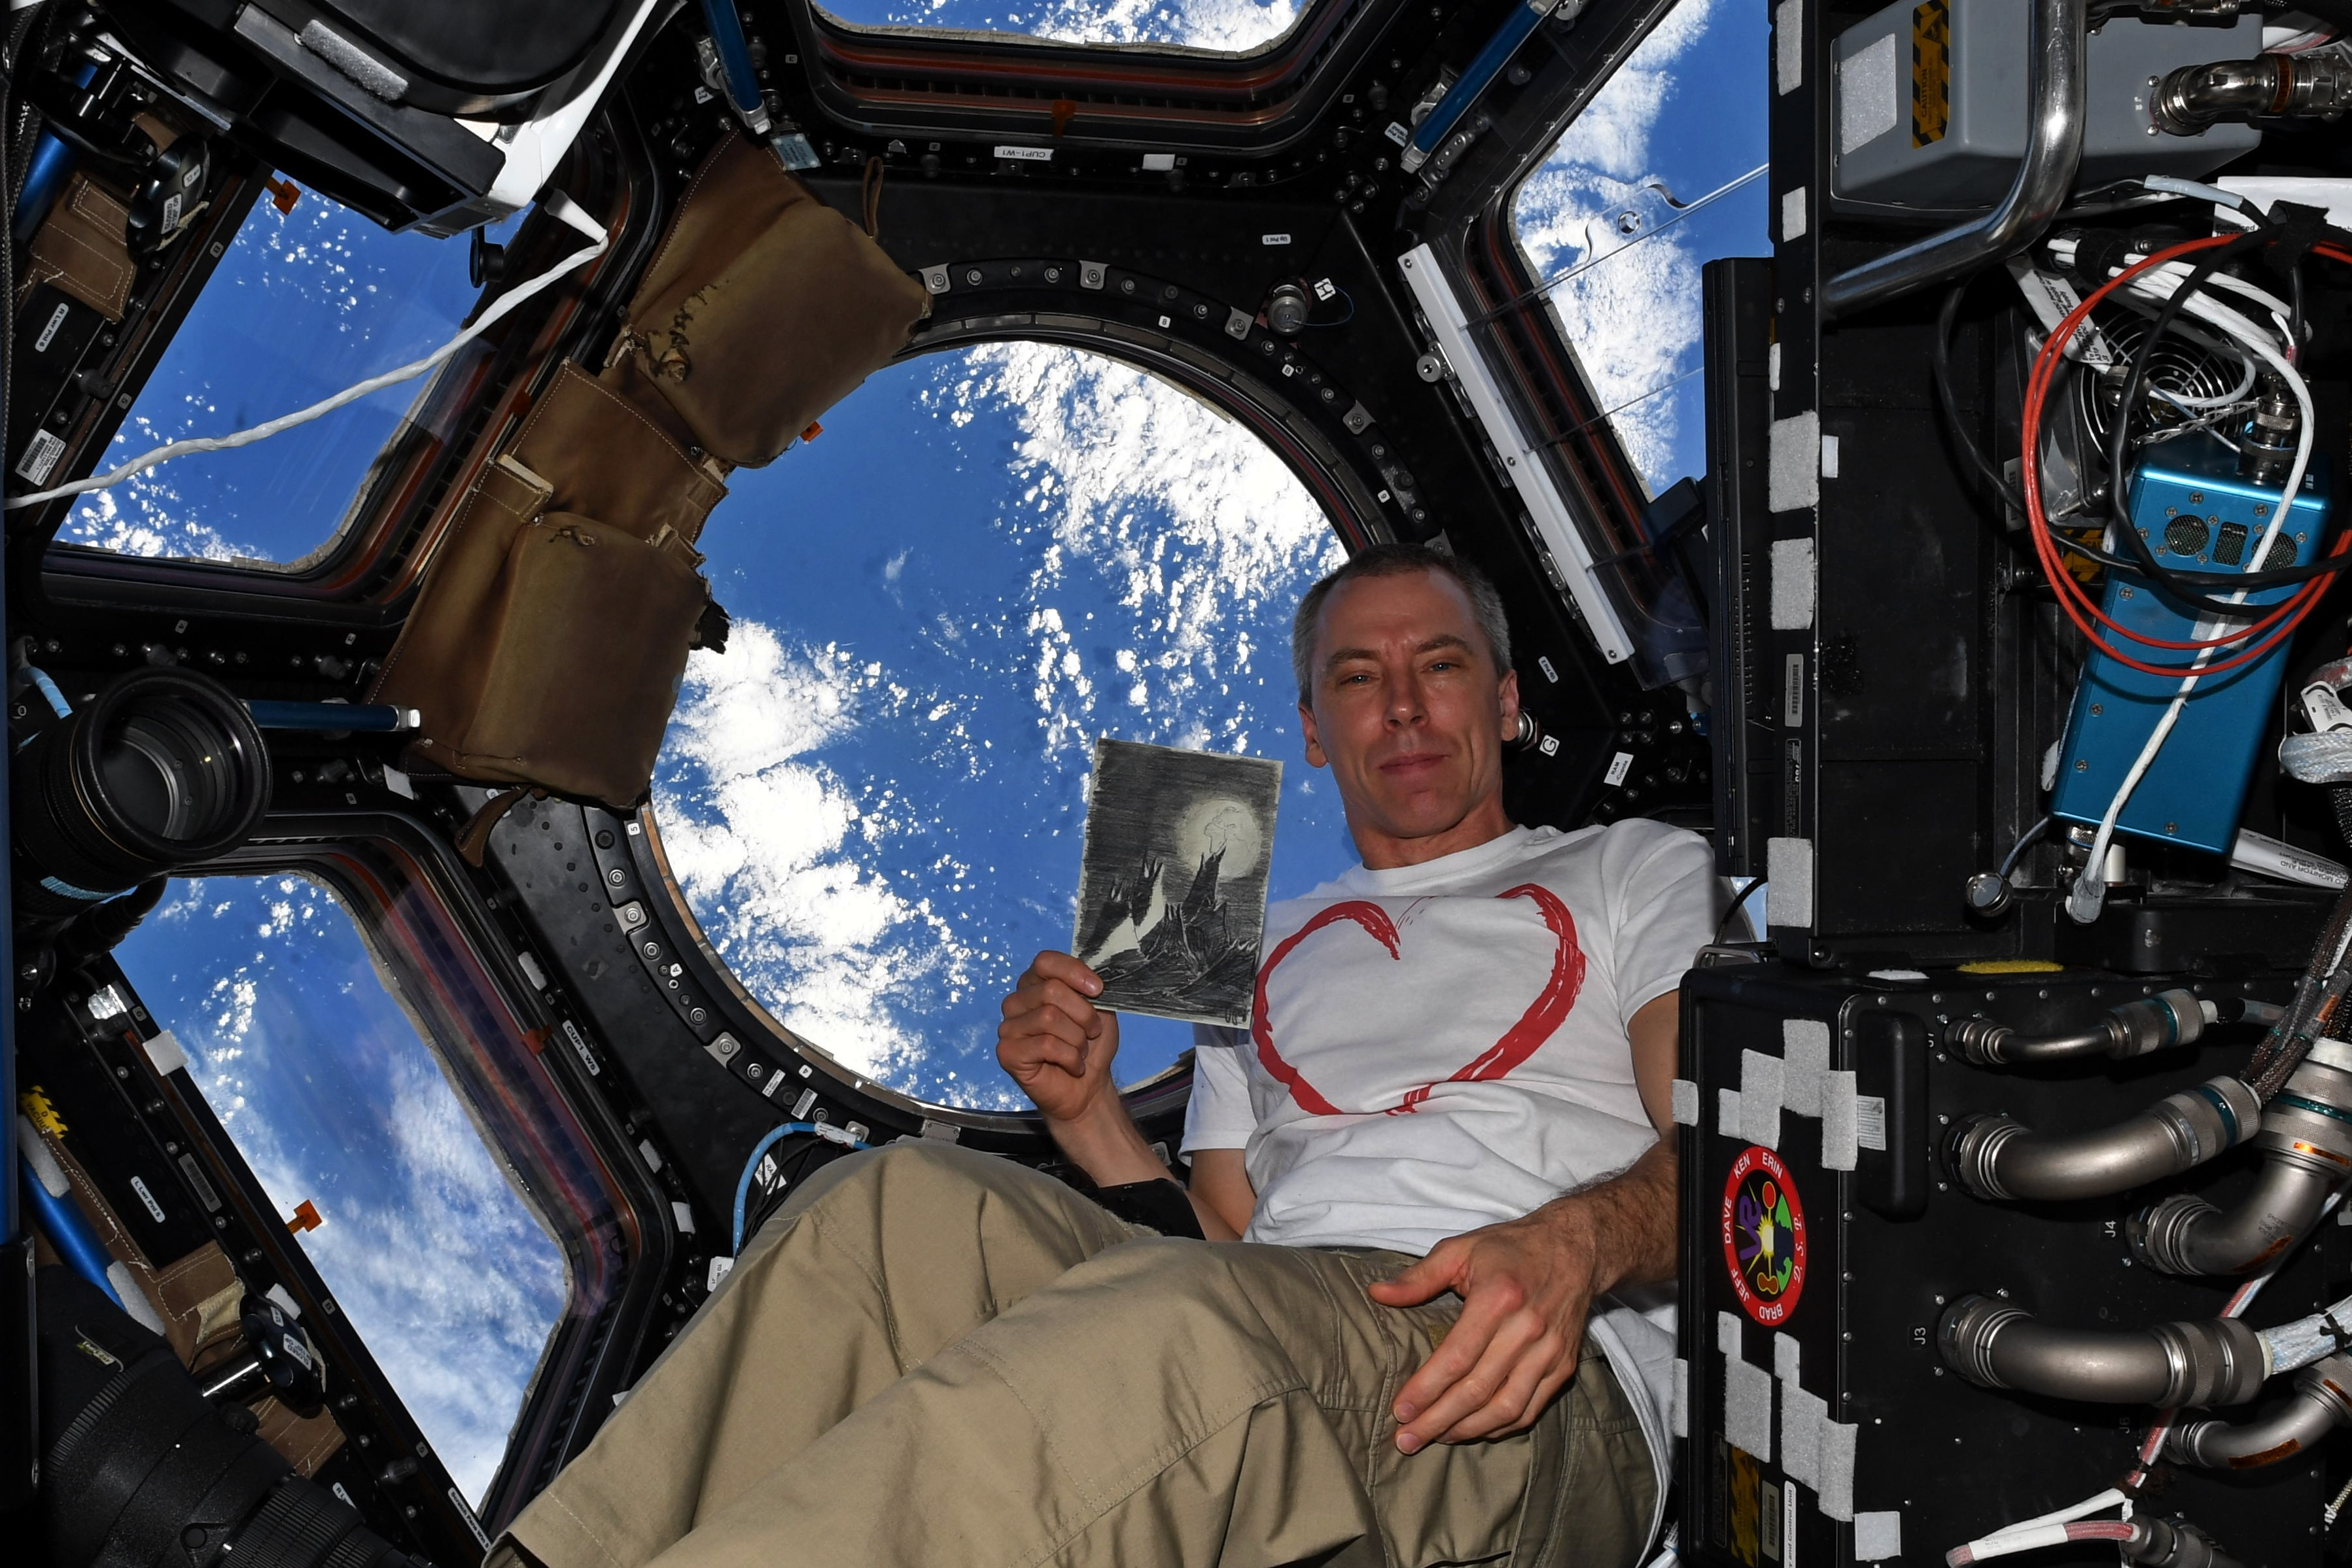 life of astronaut in space station - photo #47